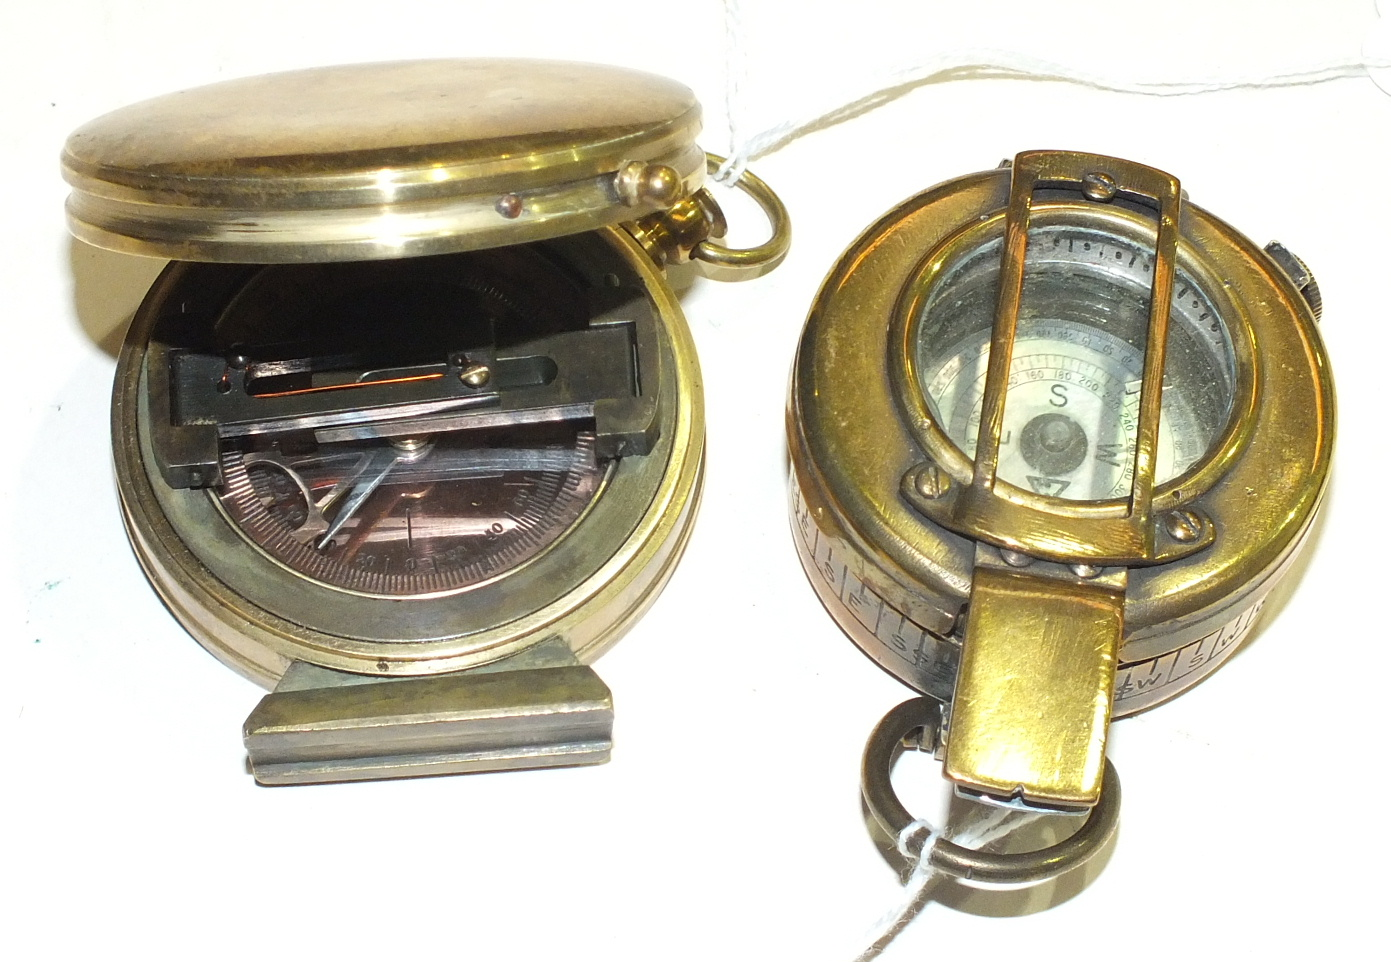 Lot 112 - A brass prismatic compass dated 1938, a reproduction range finder, various metalware and